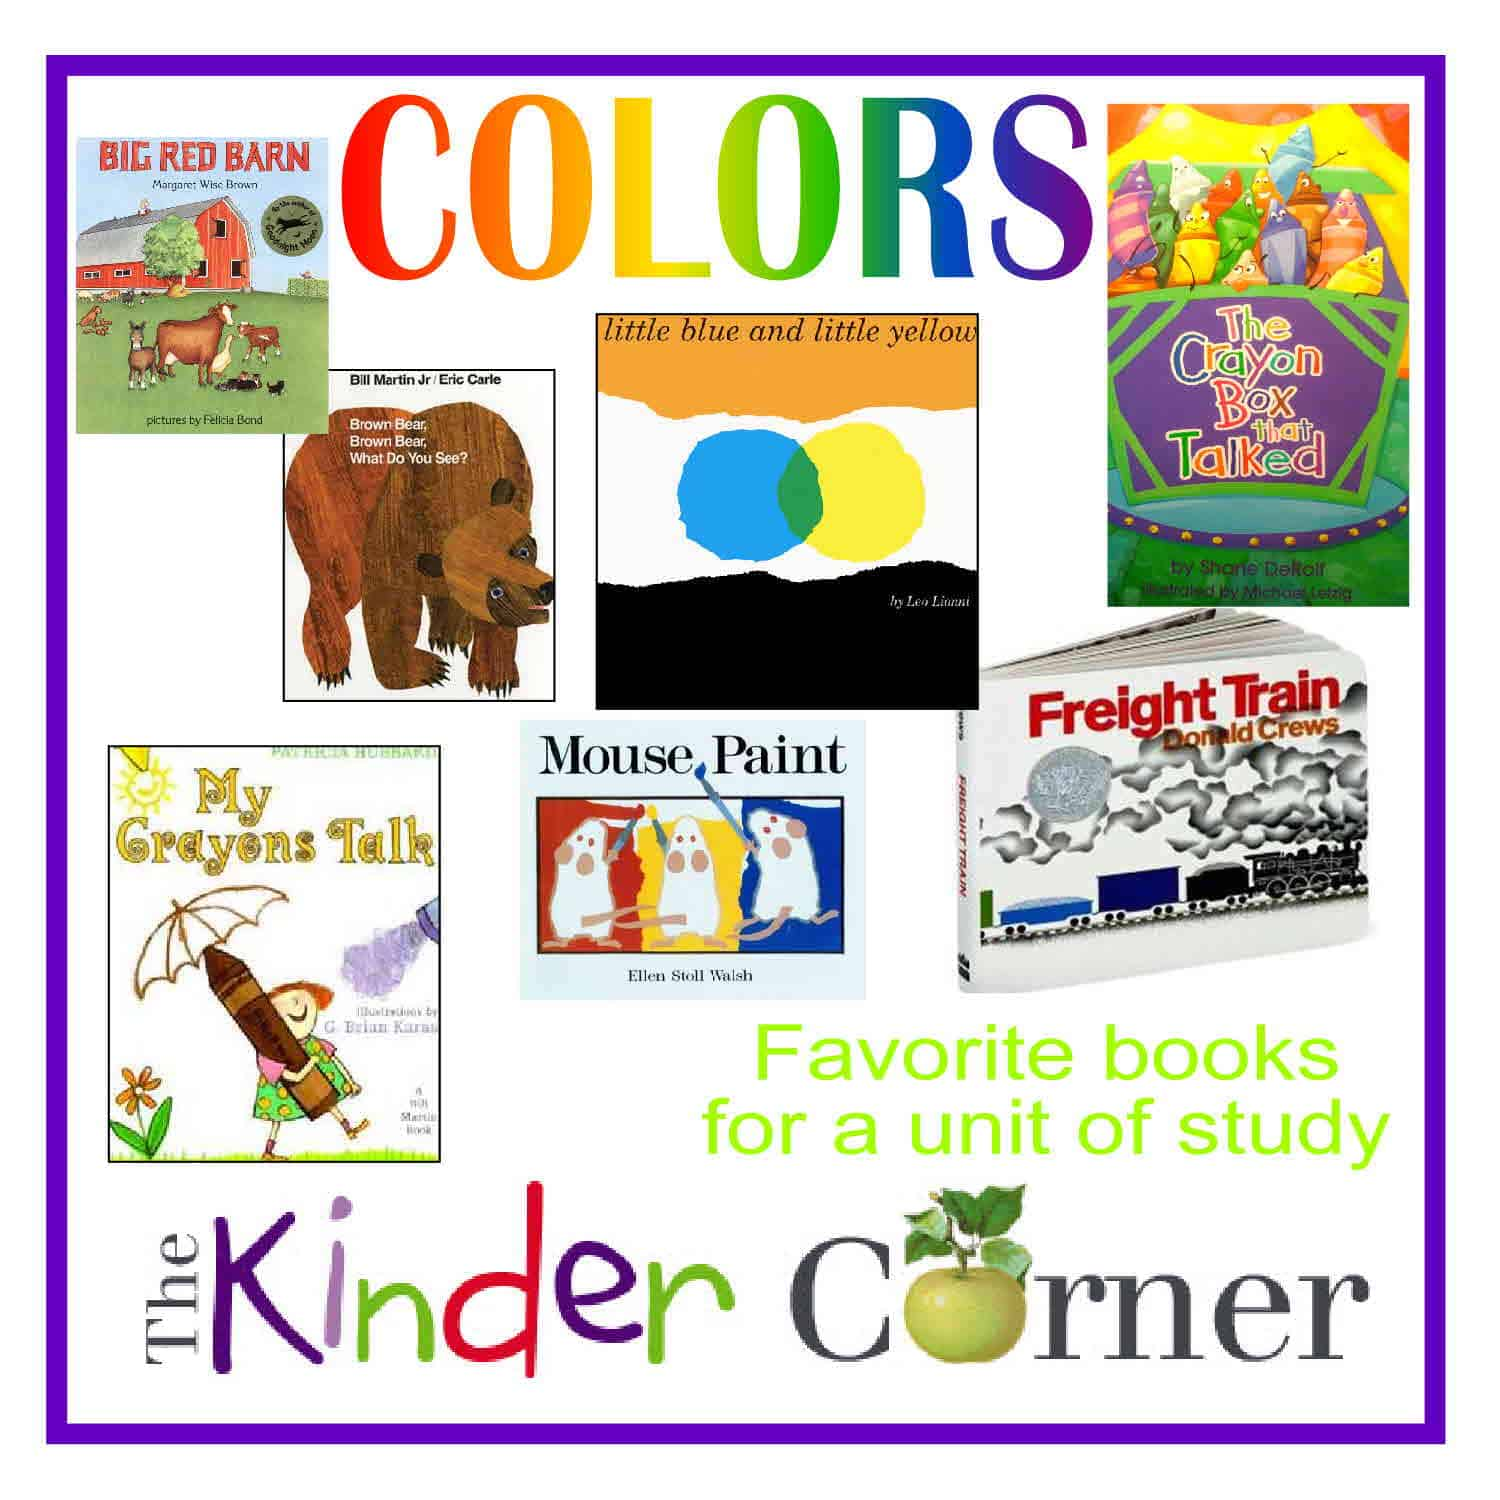 Unit study colors preschool - Books Ideas To Accompany A Colors Unit Of Study